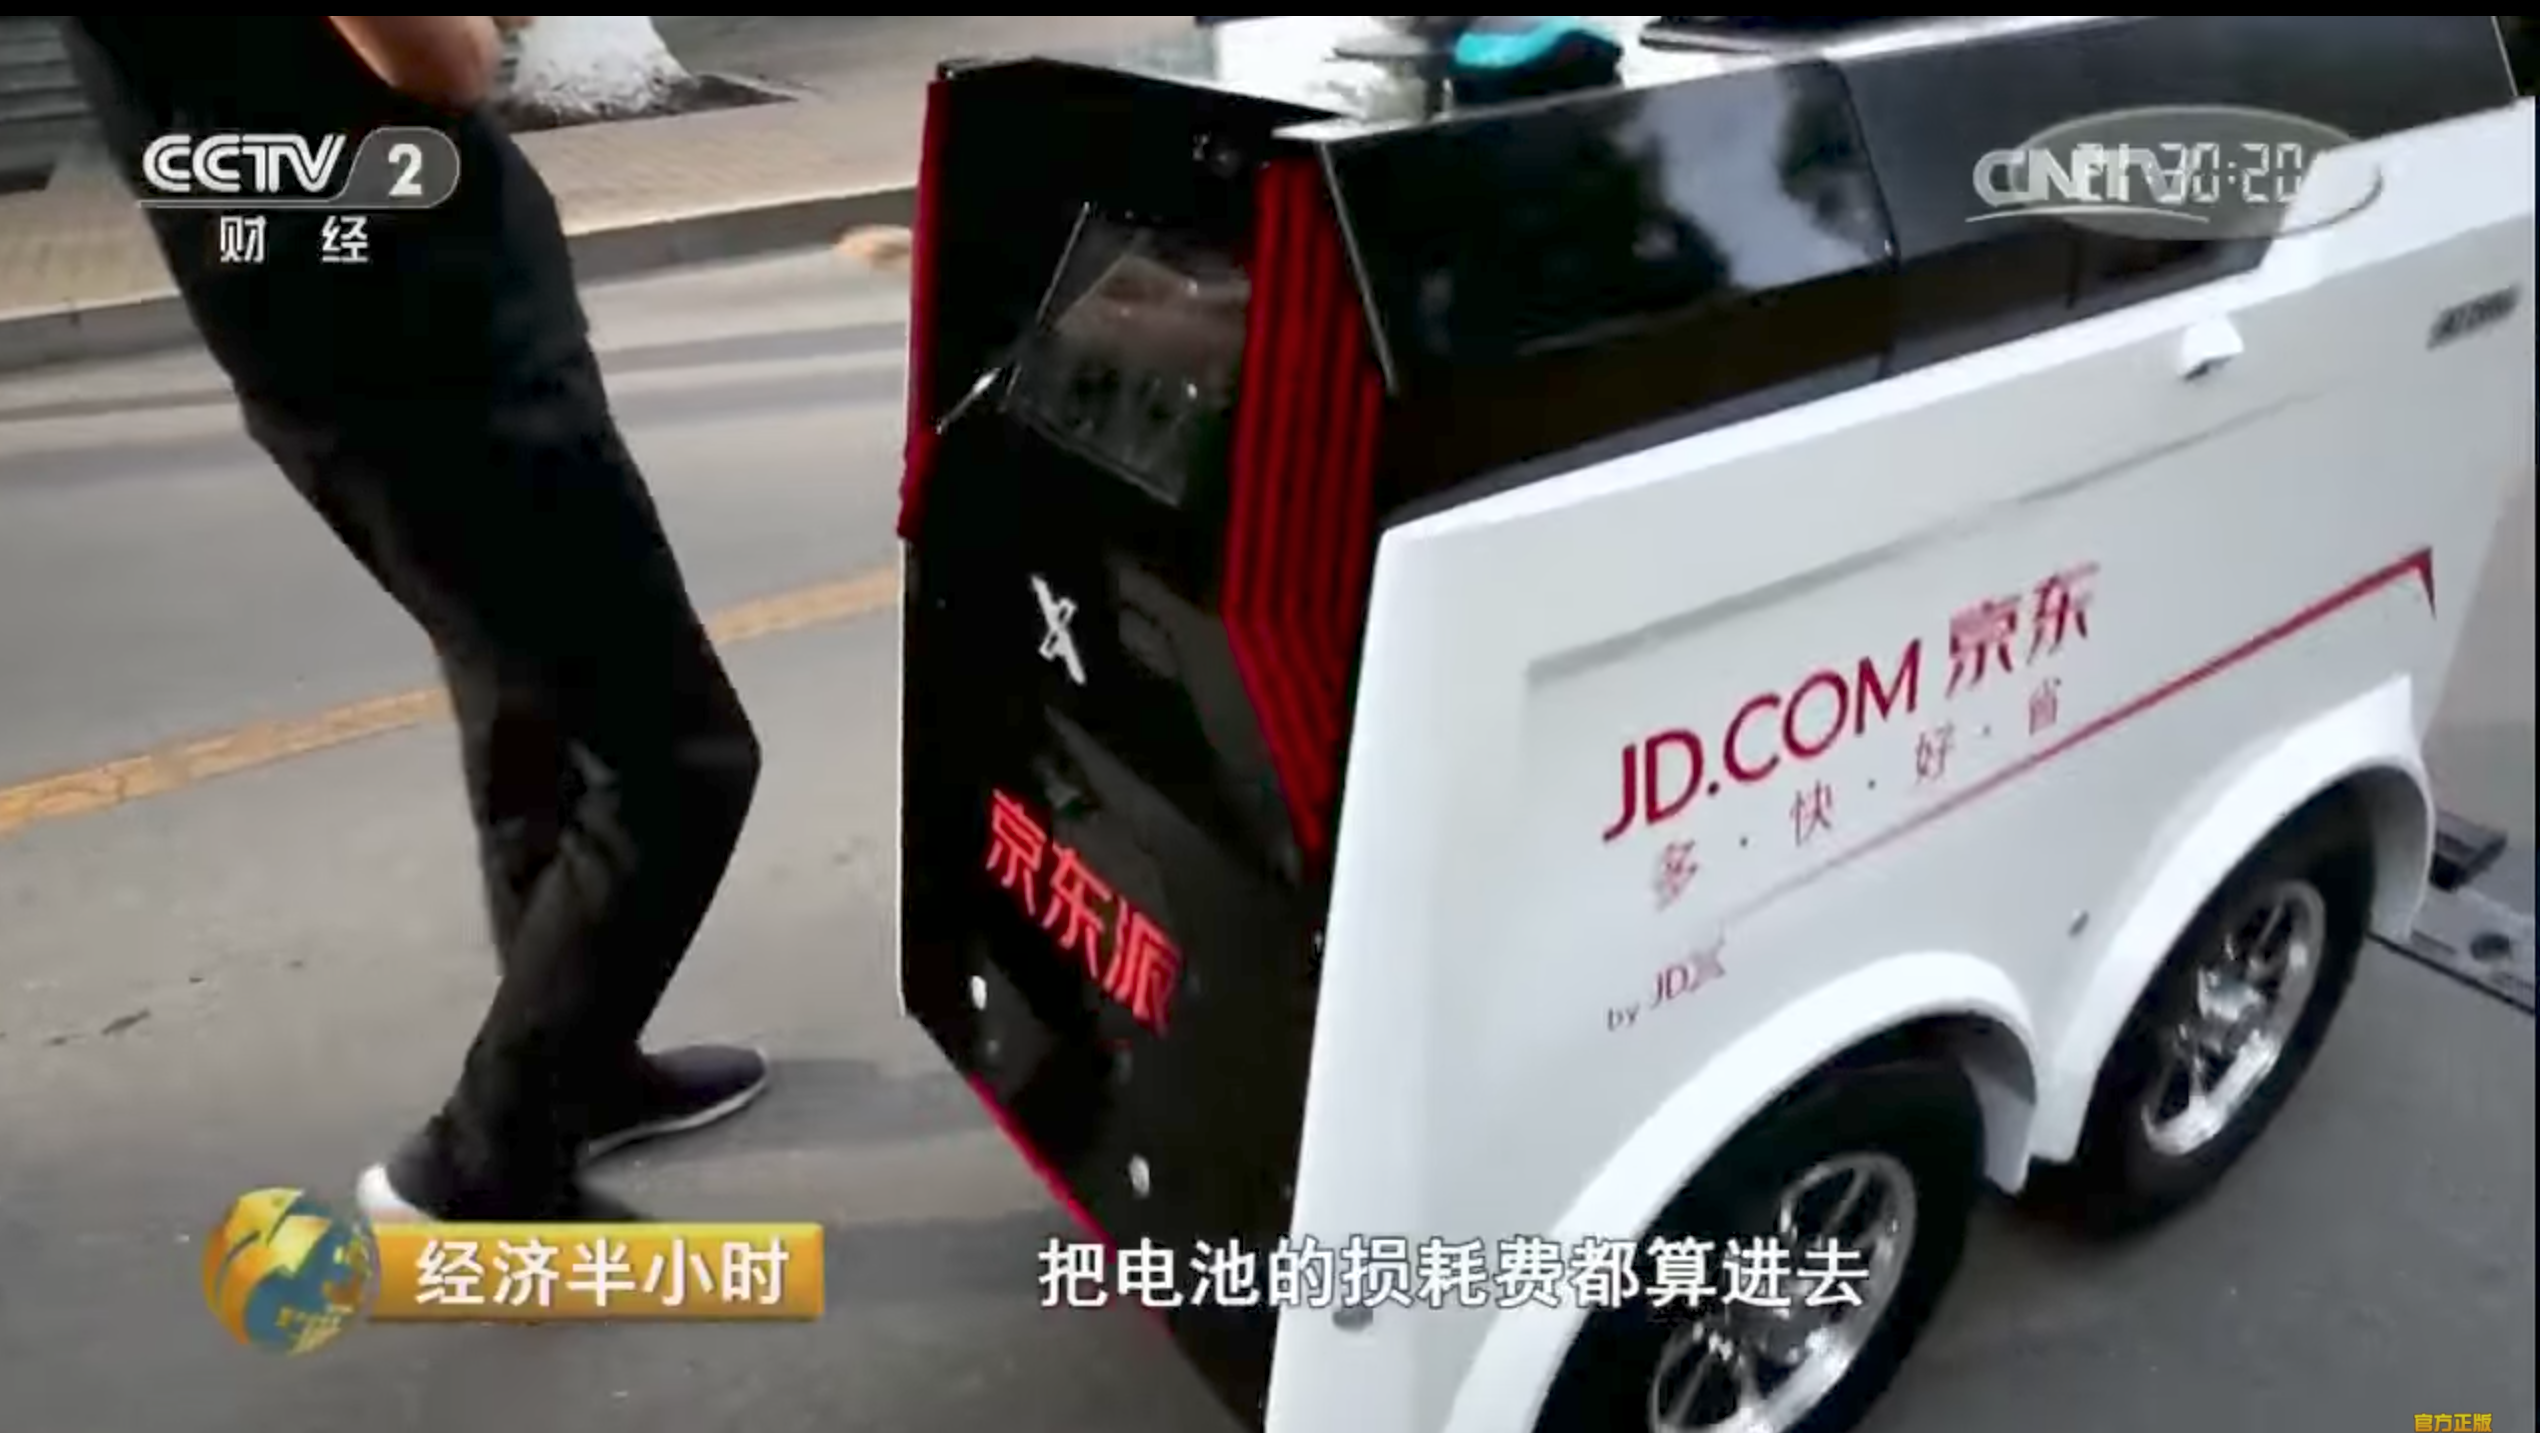 China's online shopping giant JD.com sent China's first driverless delivery robots on the road yesterday in several university campuses on June 18.